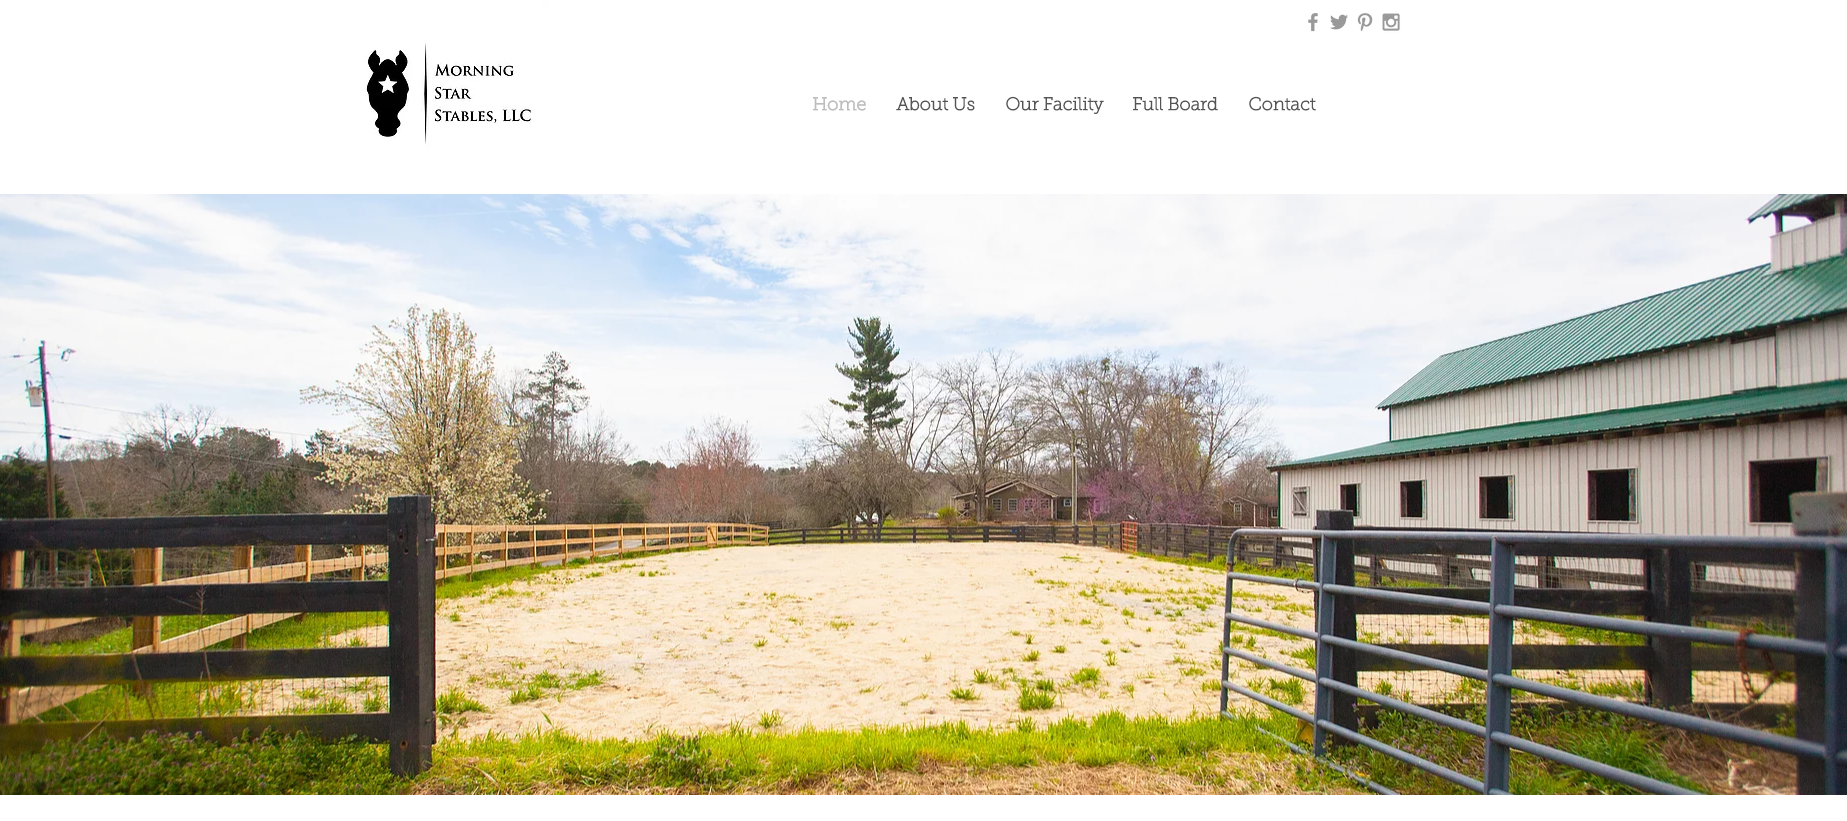 Morningstar Stables